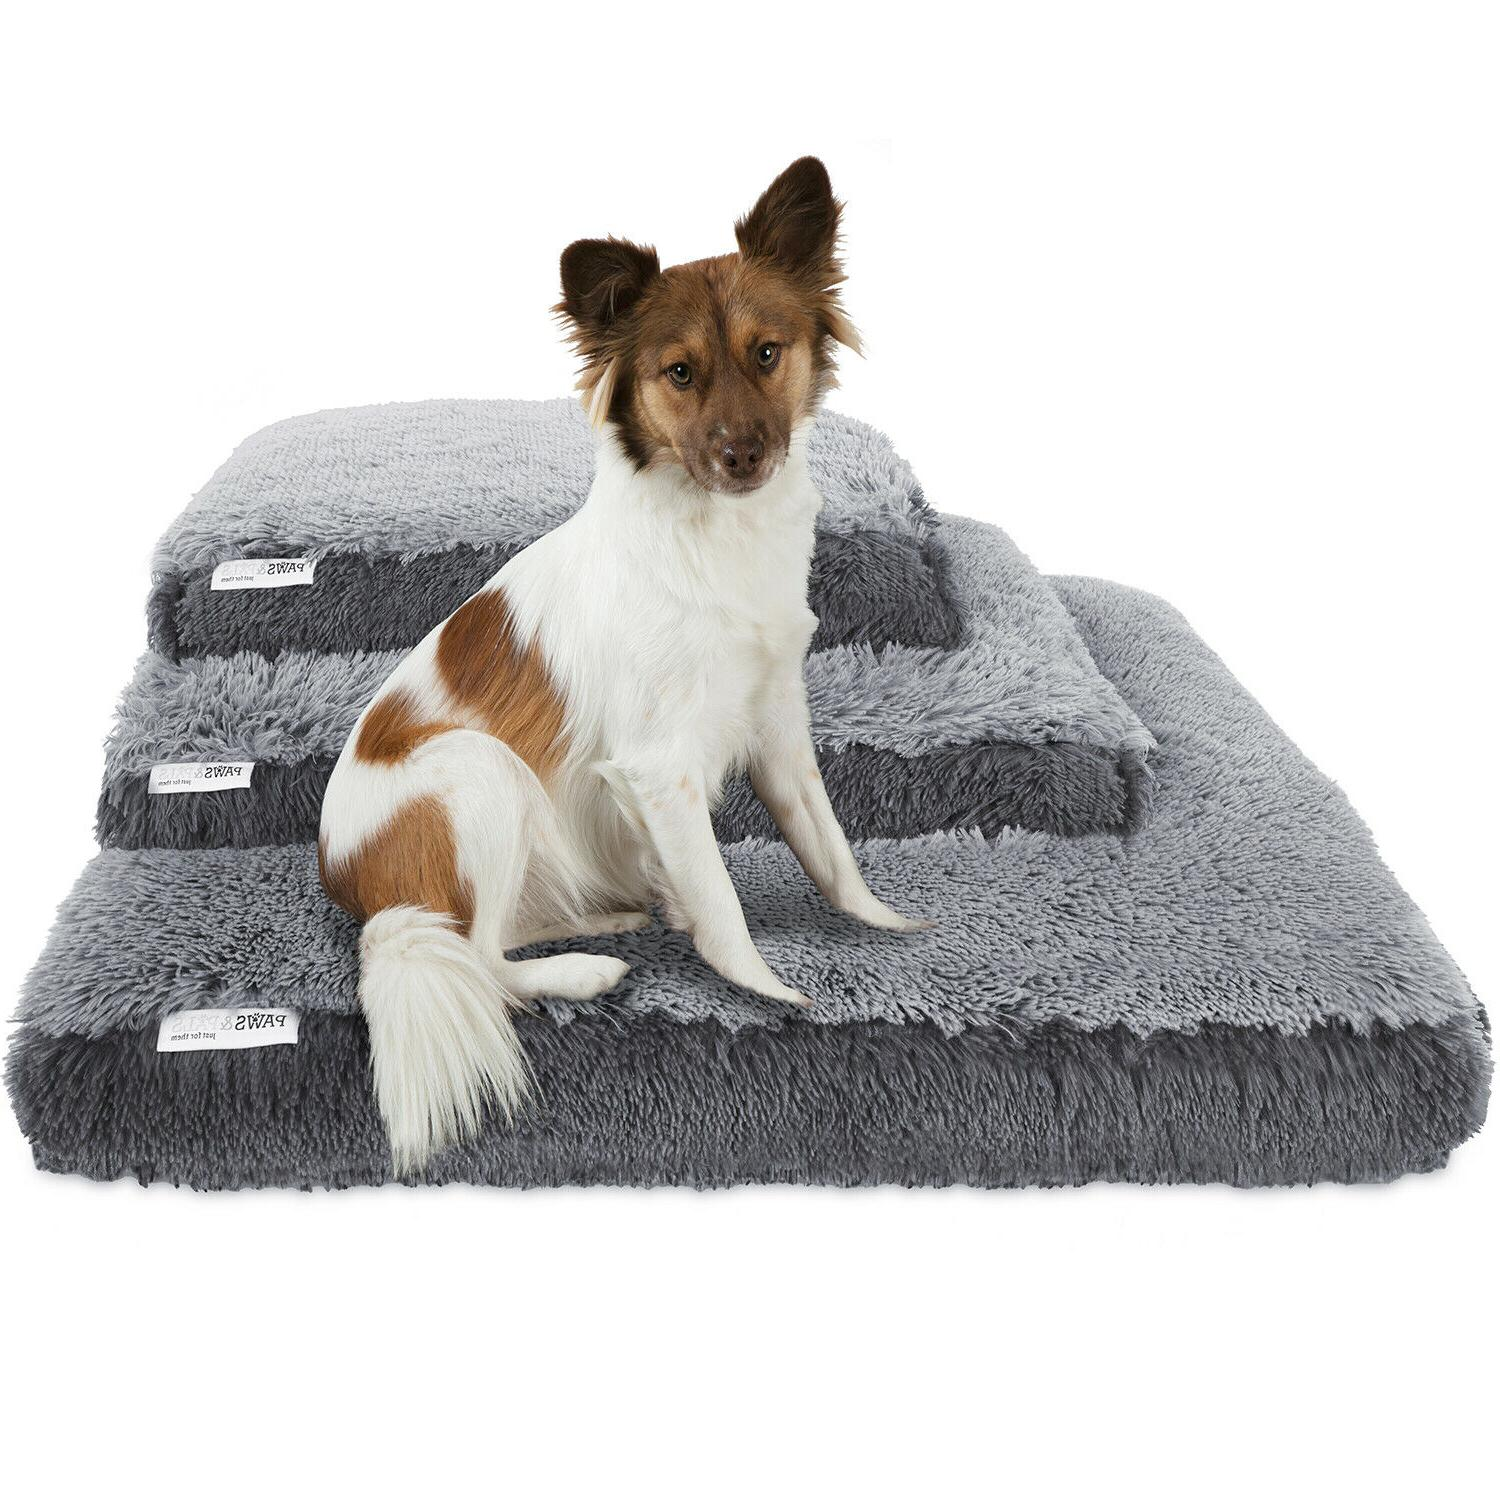 dog bed pets cats